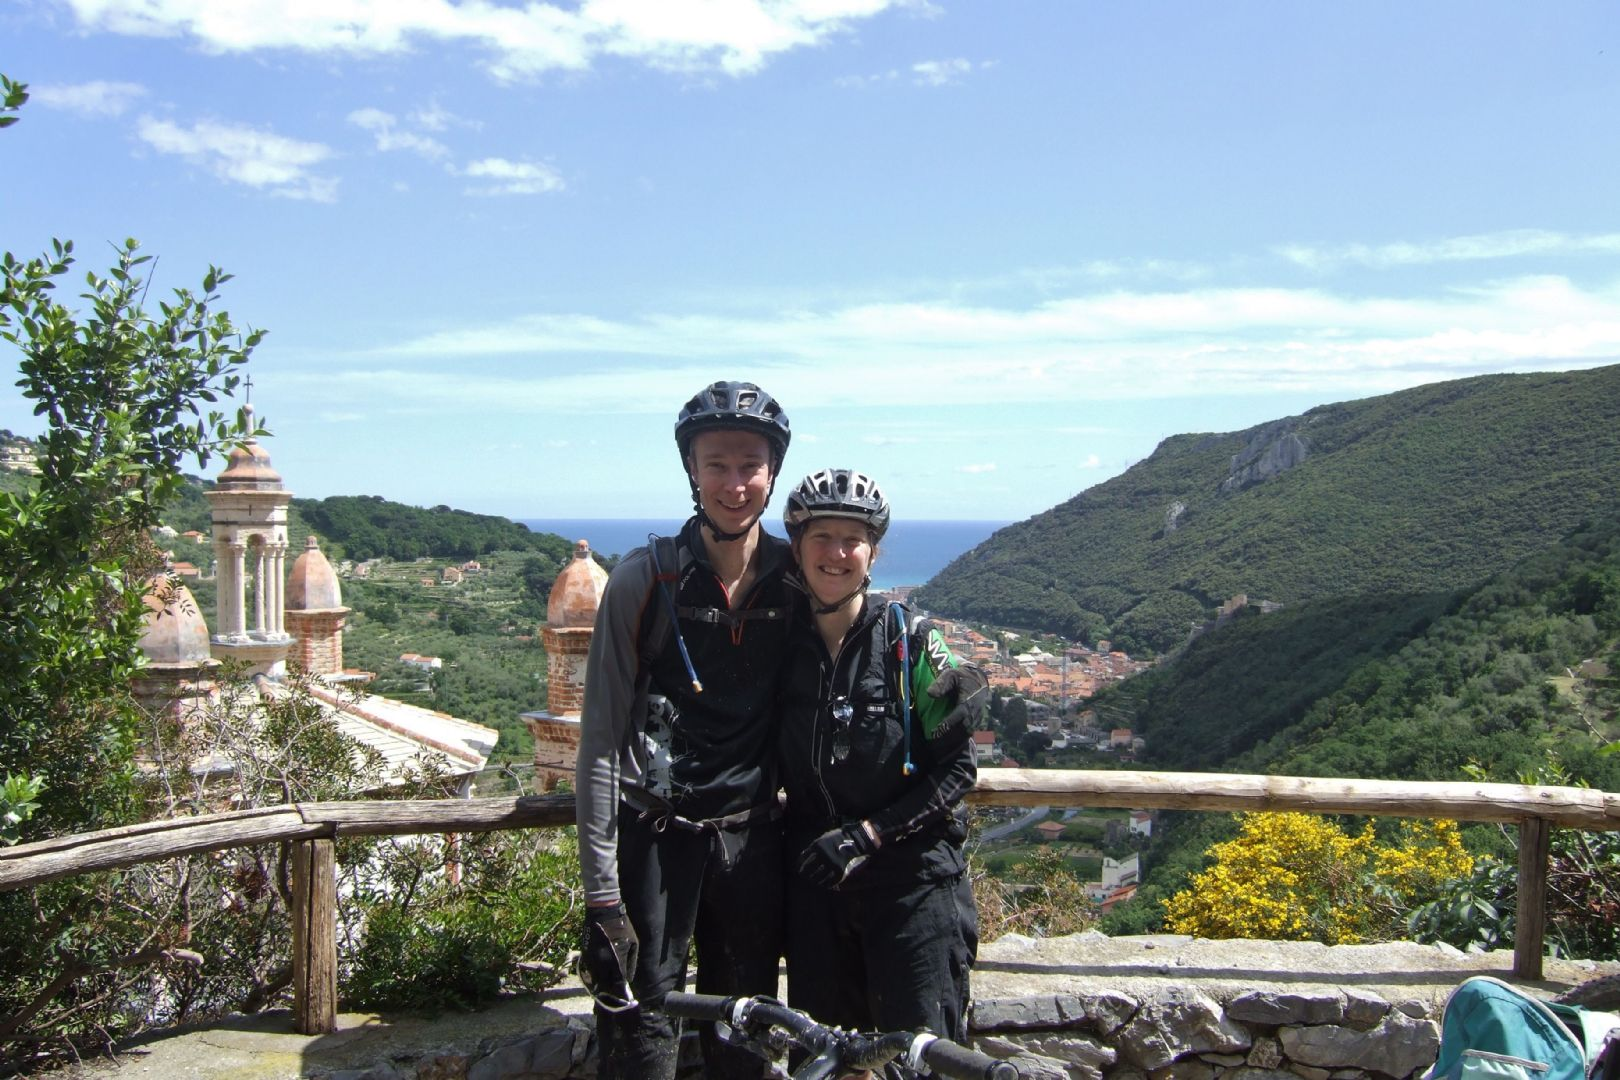 _Customer.23202.10831.jpg - Italy - Liguria - Riding the Riviera - Guided Mountain Bike Holiday - Italia Mountain Biking